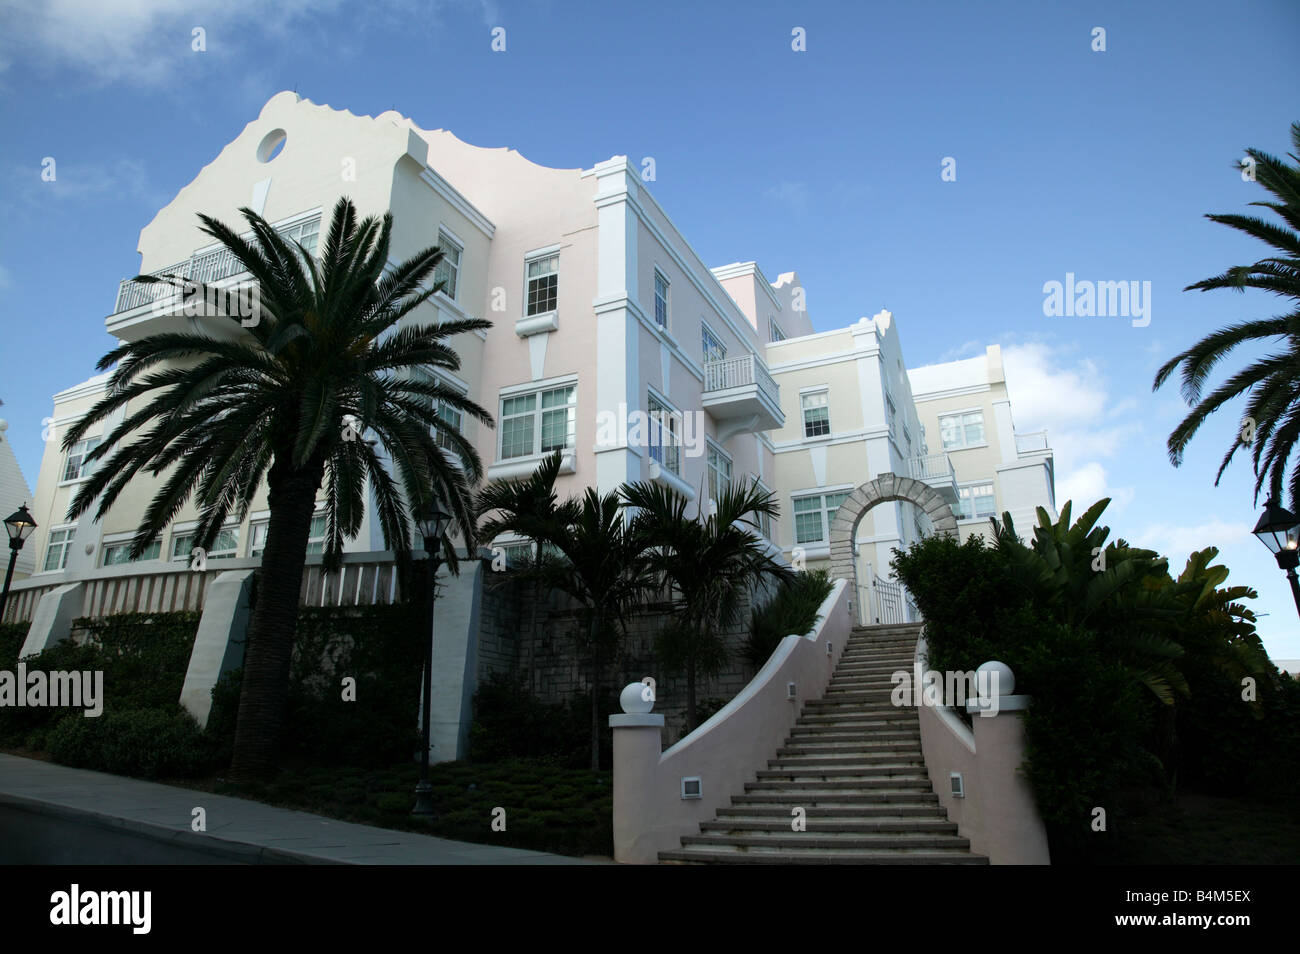 Shot of the ACE Tempest Re Building, 30 Woodbourne Ave, Hamilton, Bermuda - Stock Image